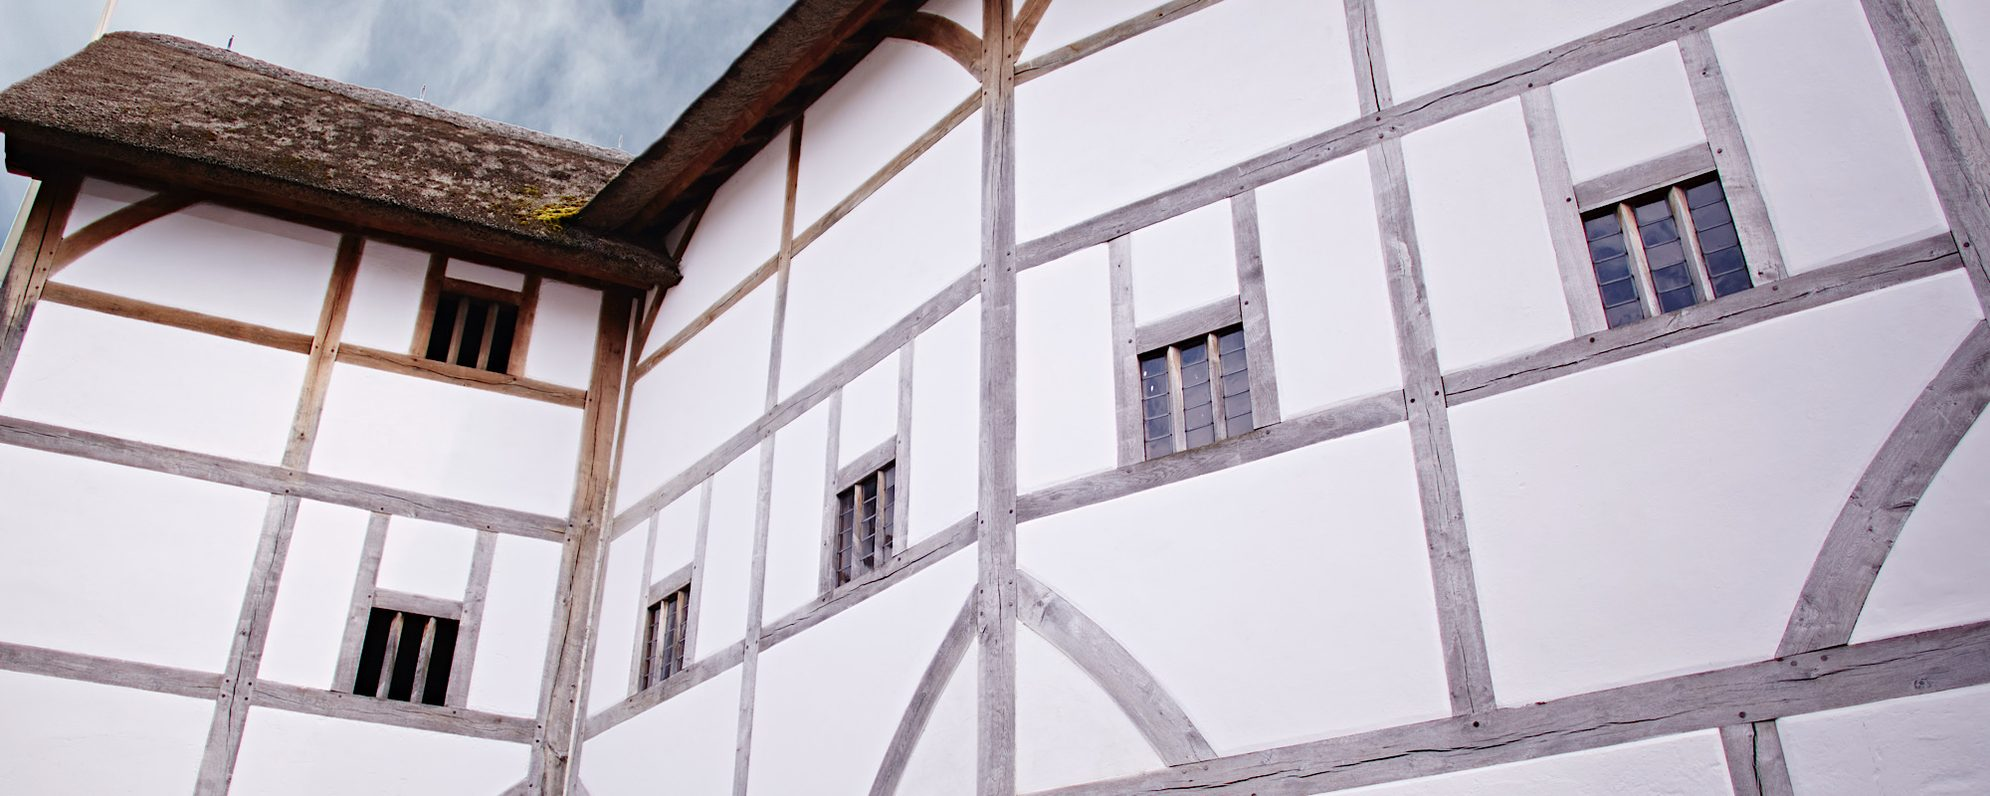 A close up of a white timber framed building